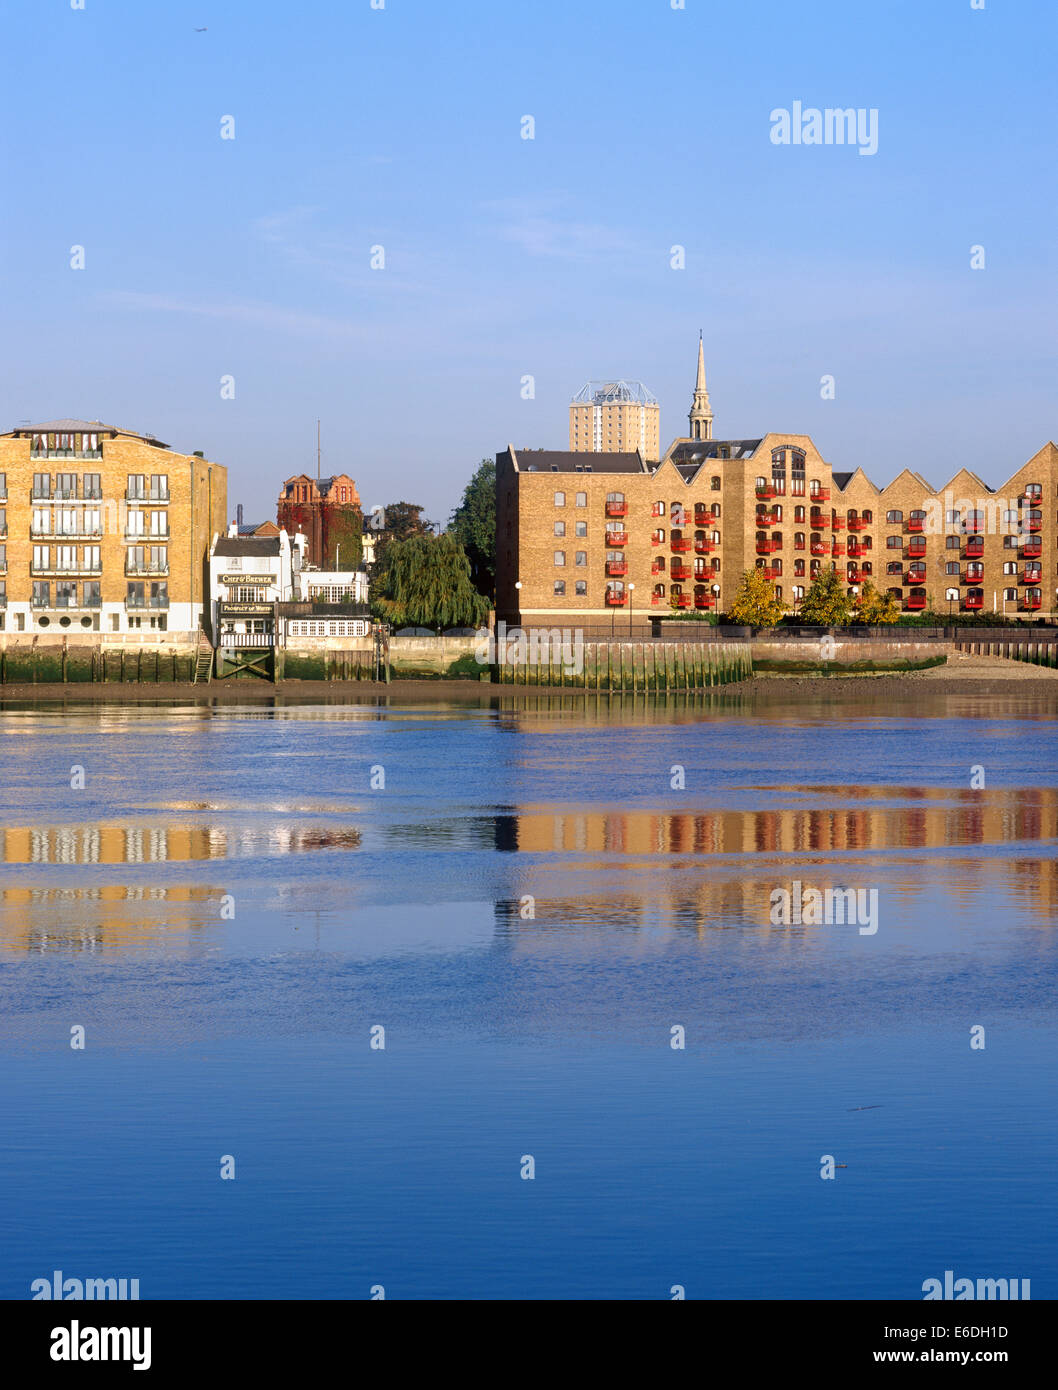 Whitby Pub Wapping High Street Rotherhythe London uk - Stock Image